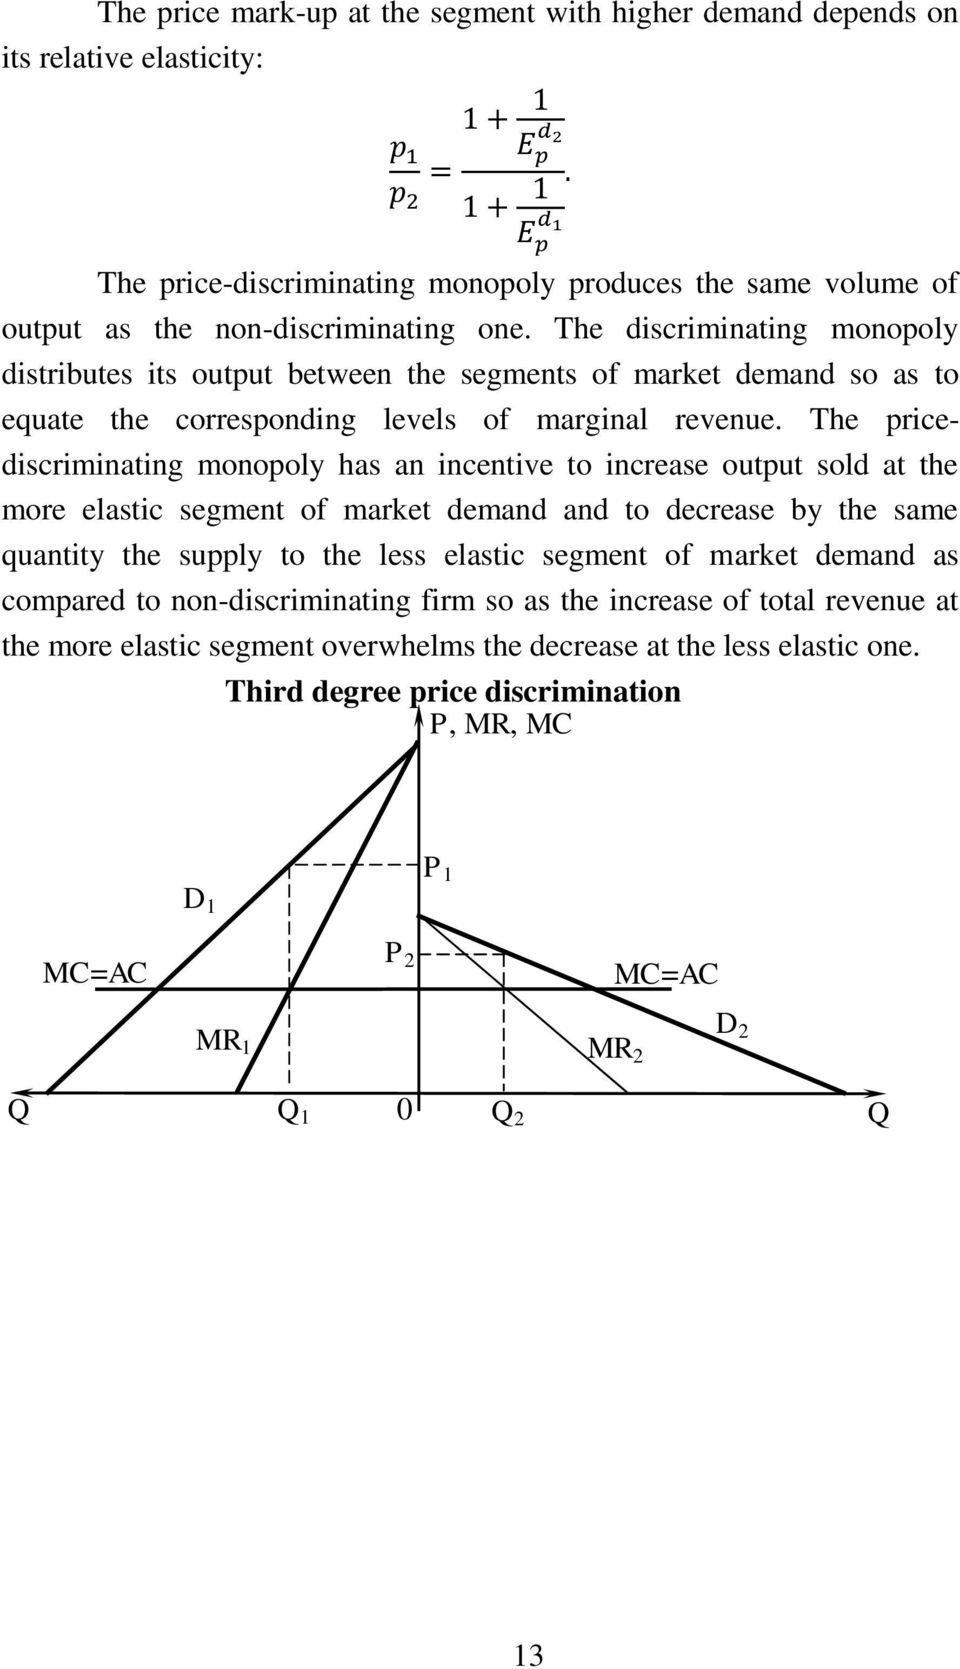 The pricediscriminating monopoly has an incentive to increase output sold at the more elastic segment of market demand and to decrease by the same quantity the supply to the less elastic segment